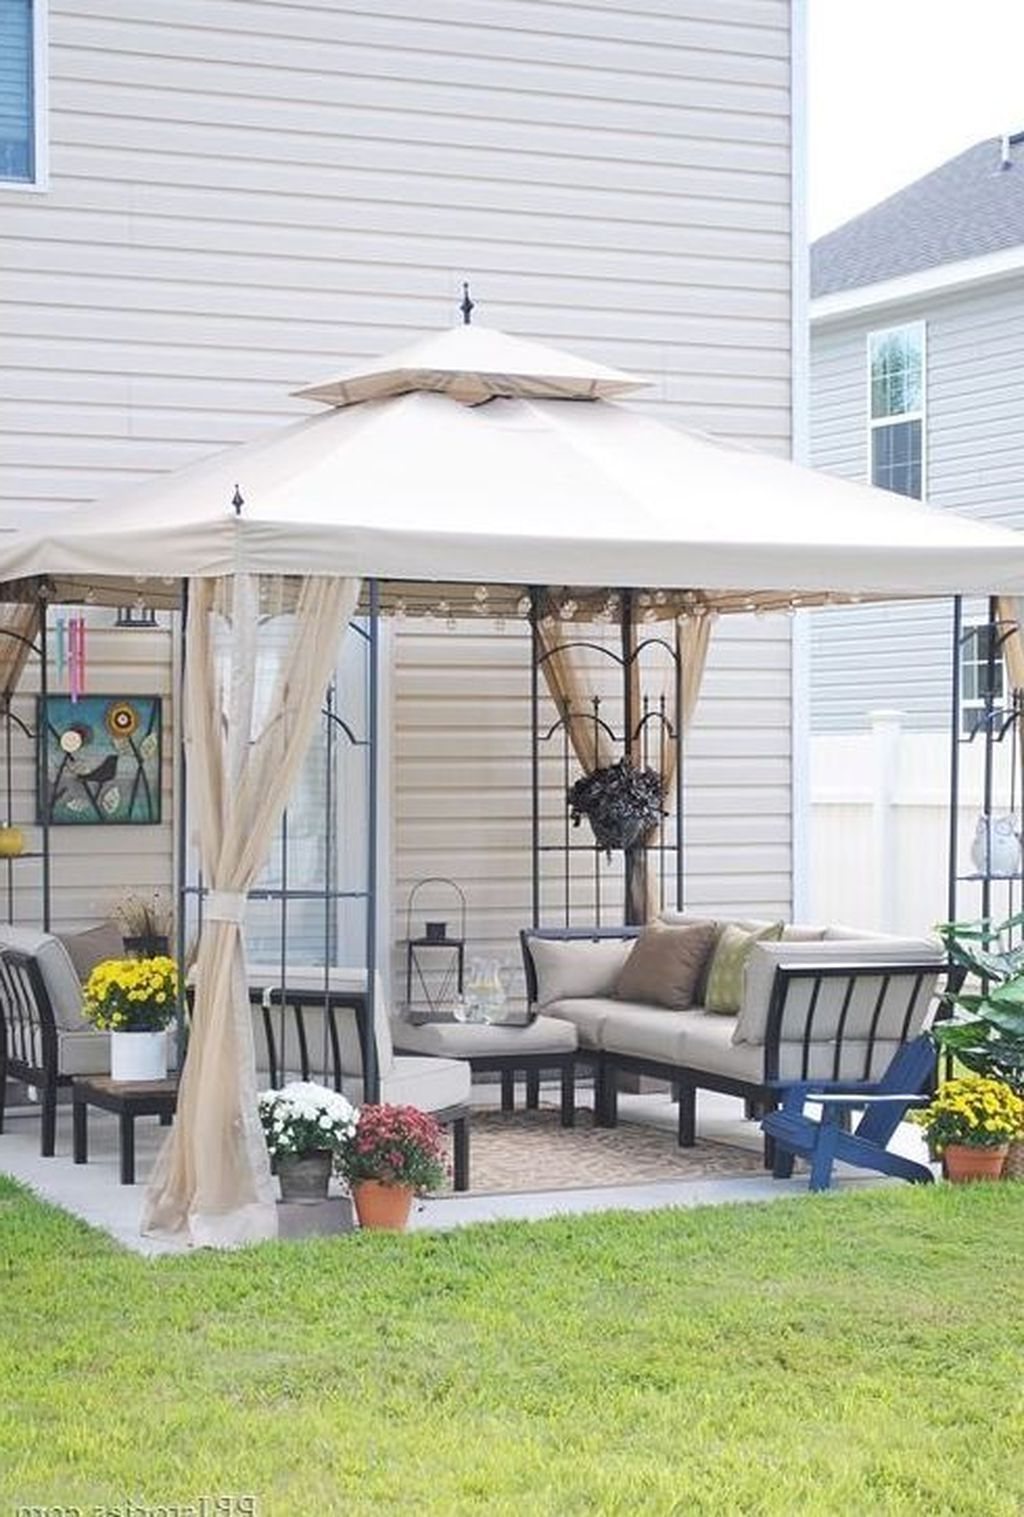 A4 Ft Cedar Pergola Swings With Regard To Trendy 20+ Beautiful Small Backyard Makeover S Ideas On A Budget (View 9 of 25)